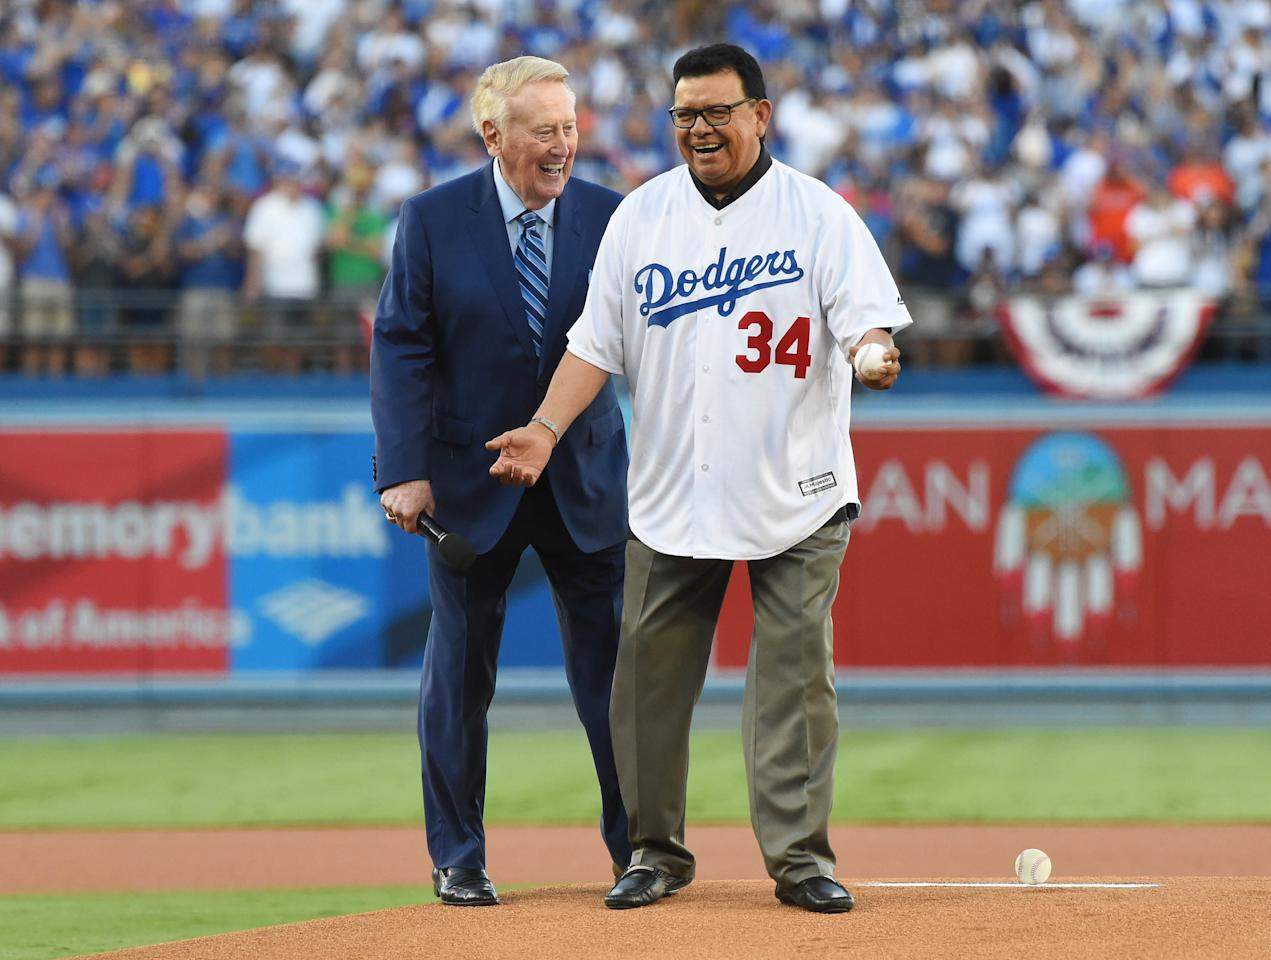 <p>Los Angeles Dodgers former broadcaster Vin Scully (left) hands the ball to former pitcher Fernando Valenzuela for the ceremonial first pitch in game two of the 2017 World Series against the Houston Astros at Dodger Stadium. Mandatory Credit: Jayne Kamin-Oncea-USA TODAY Sports </p>